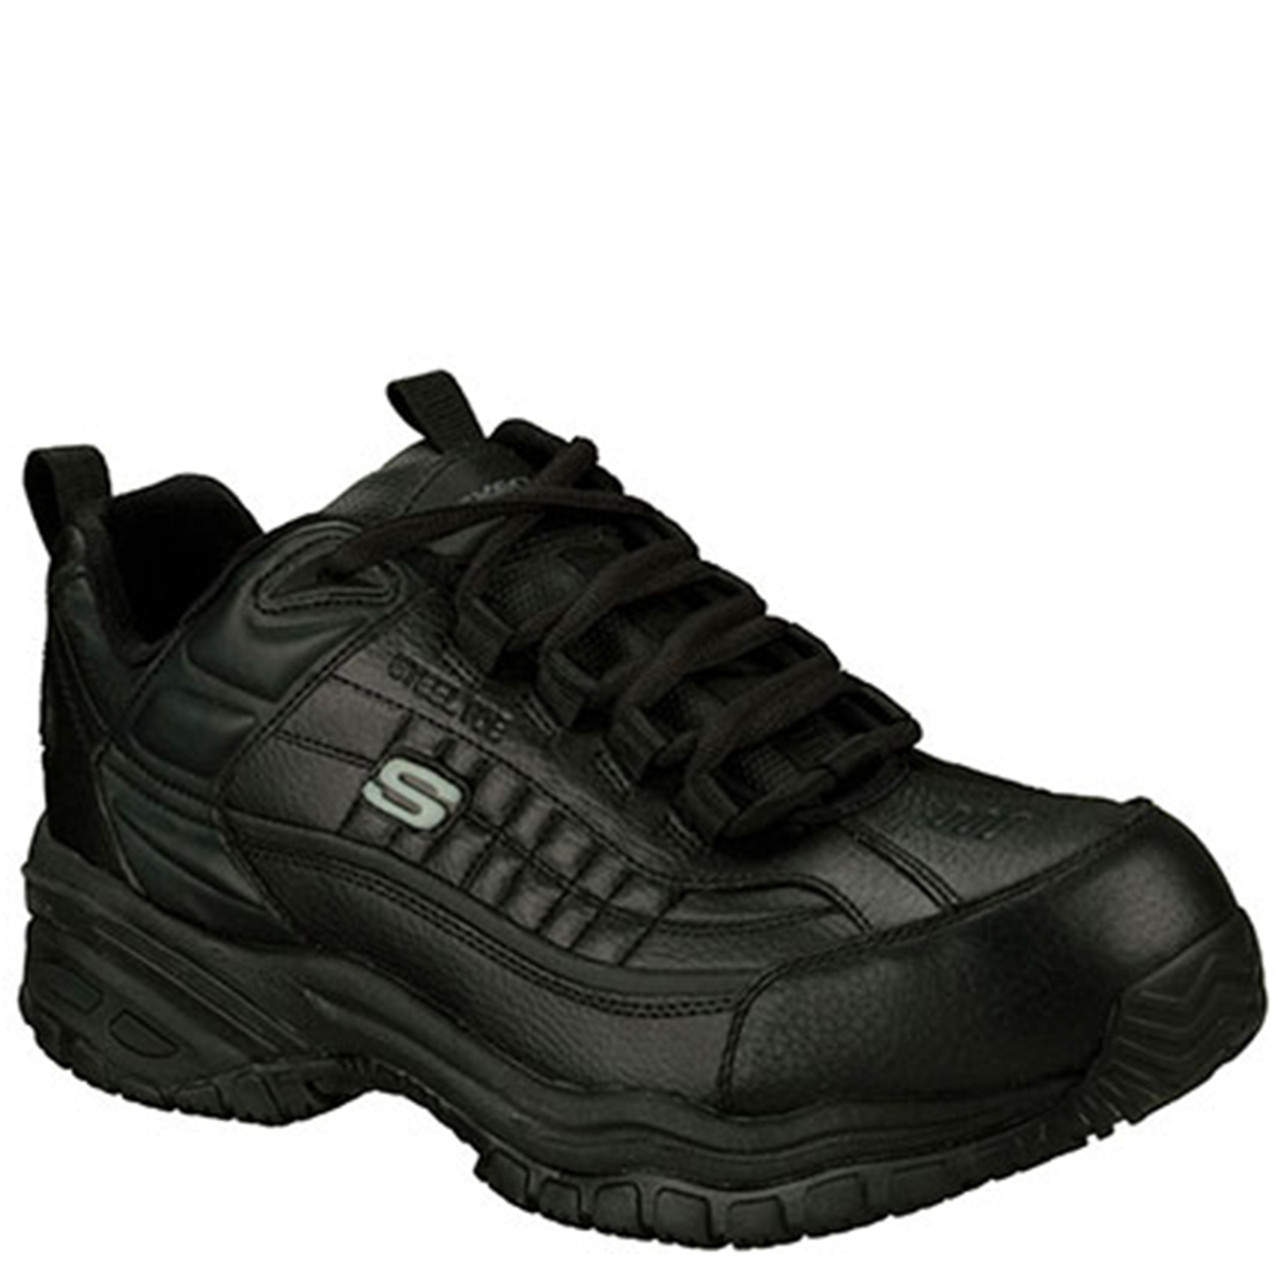 photo regarding Skechers Printable Coupon identified as Coupon for sketcher sneakers / Club monaco scholar price cut code